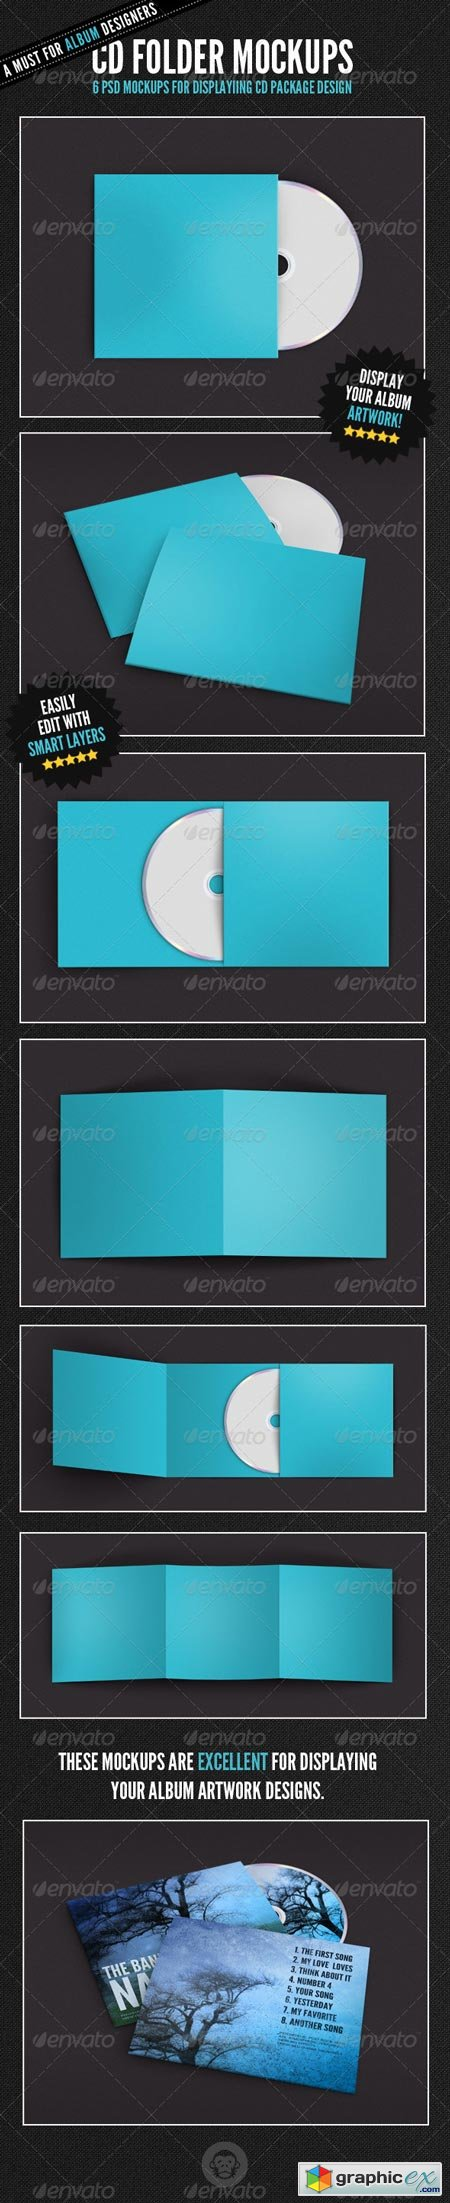 Album Cover - CD Folder Mockups 6705933